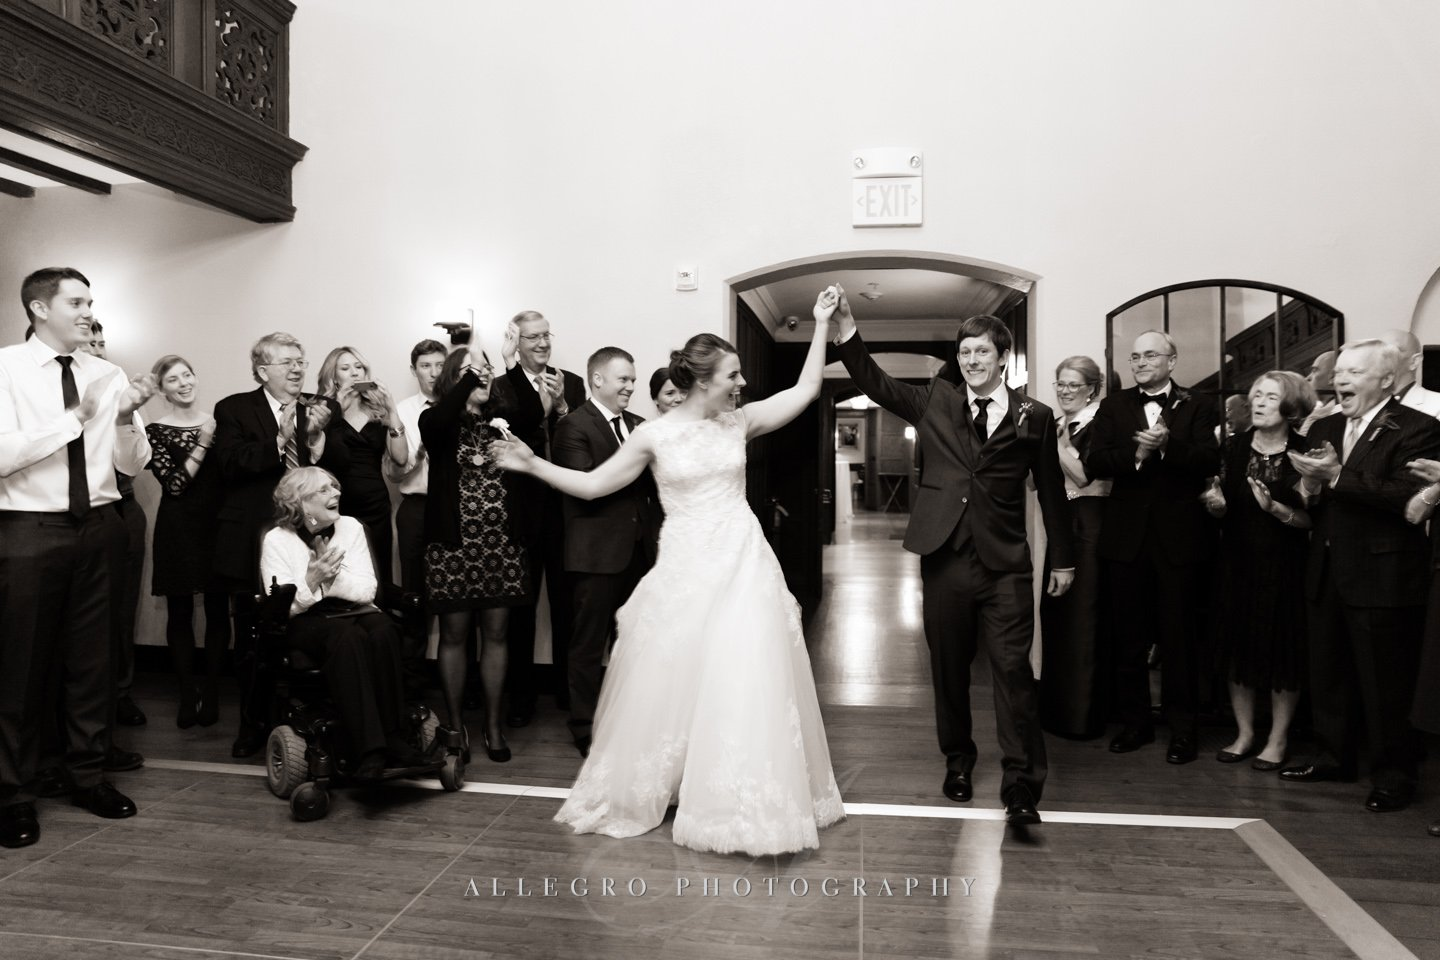 entrance - photo by allegro photography